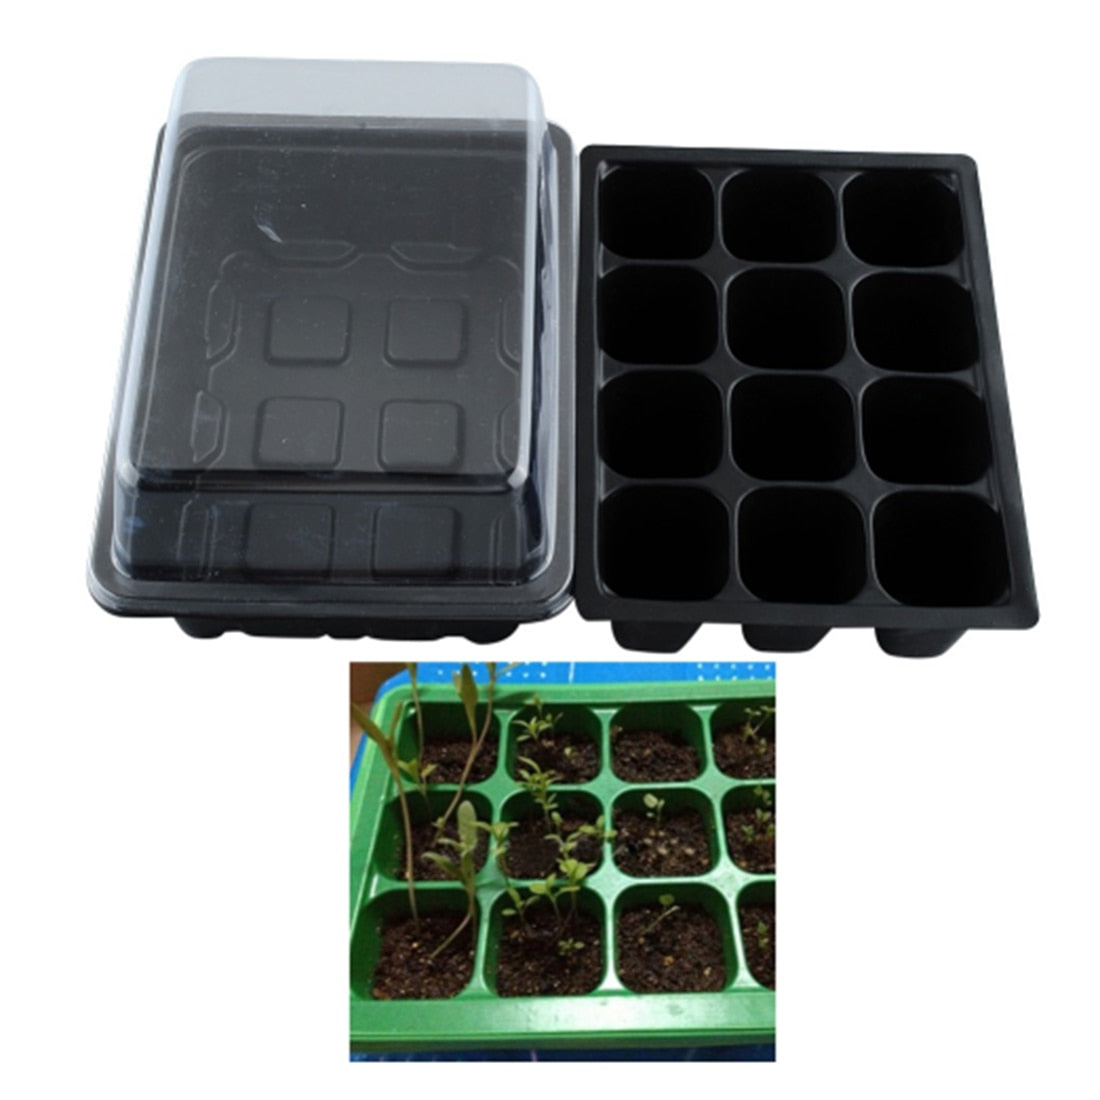 Seed Germination Kit with Humidity Dome